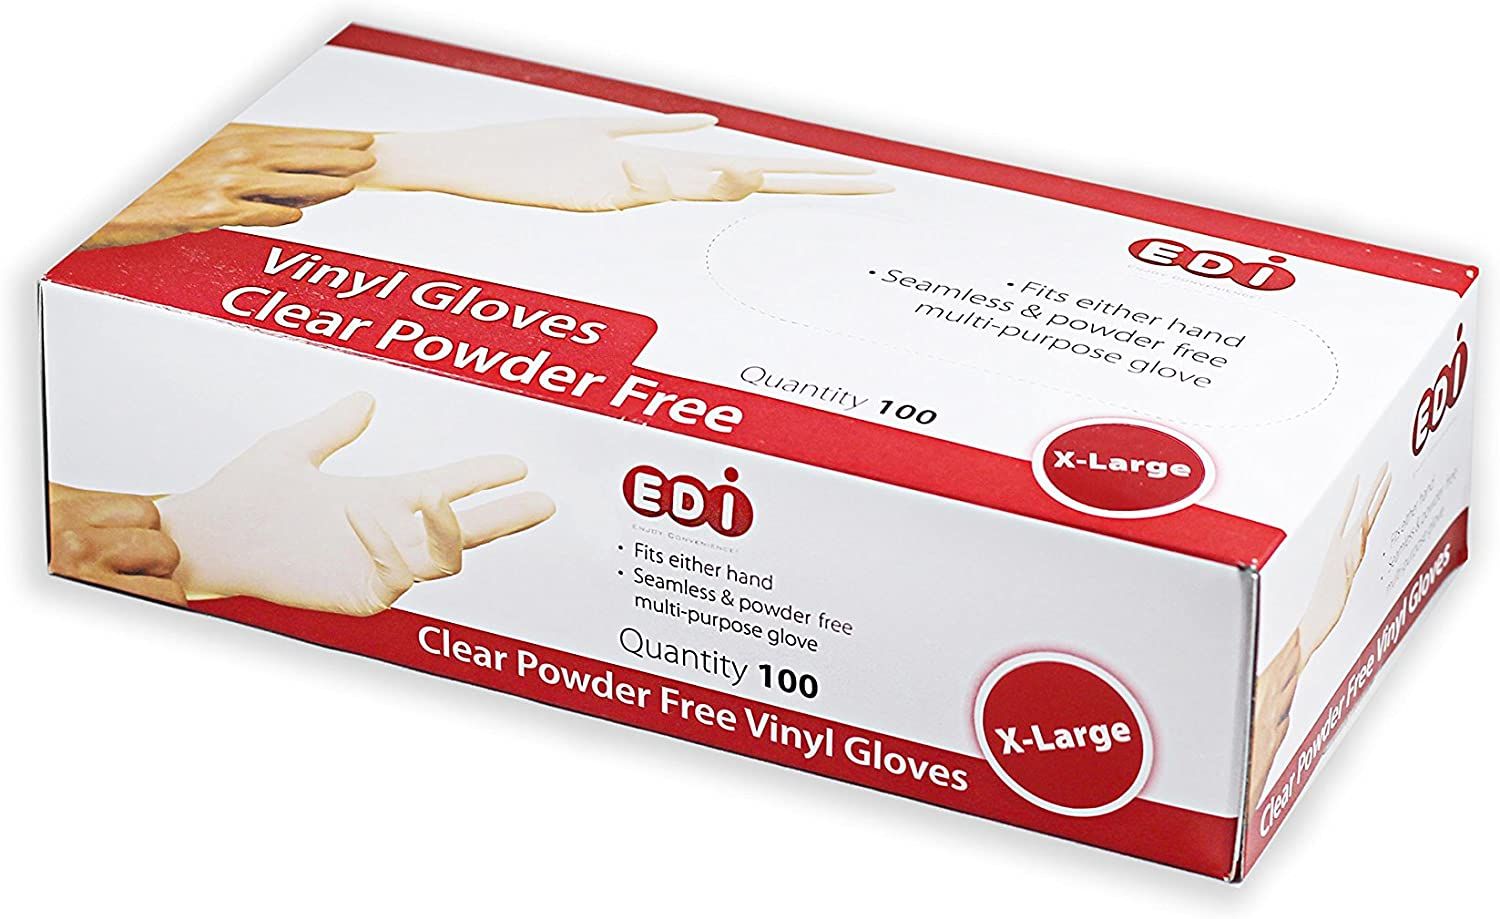 EDI Clear Powder Free Vinyl Glove,Disposable glove,Industrial Glove,Clear, Latex Free and Allergy Free, Plastic, Work, Food Service, Cleaning,100 gloves per box (1000, Extra Large)